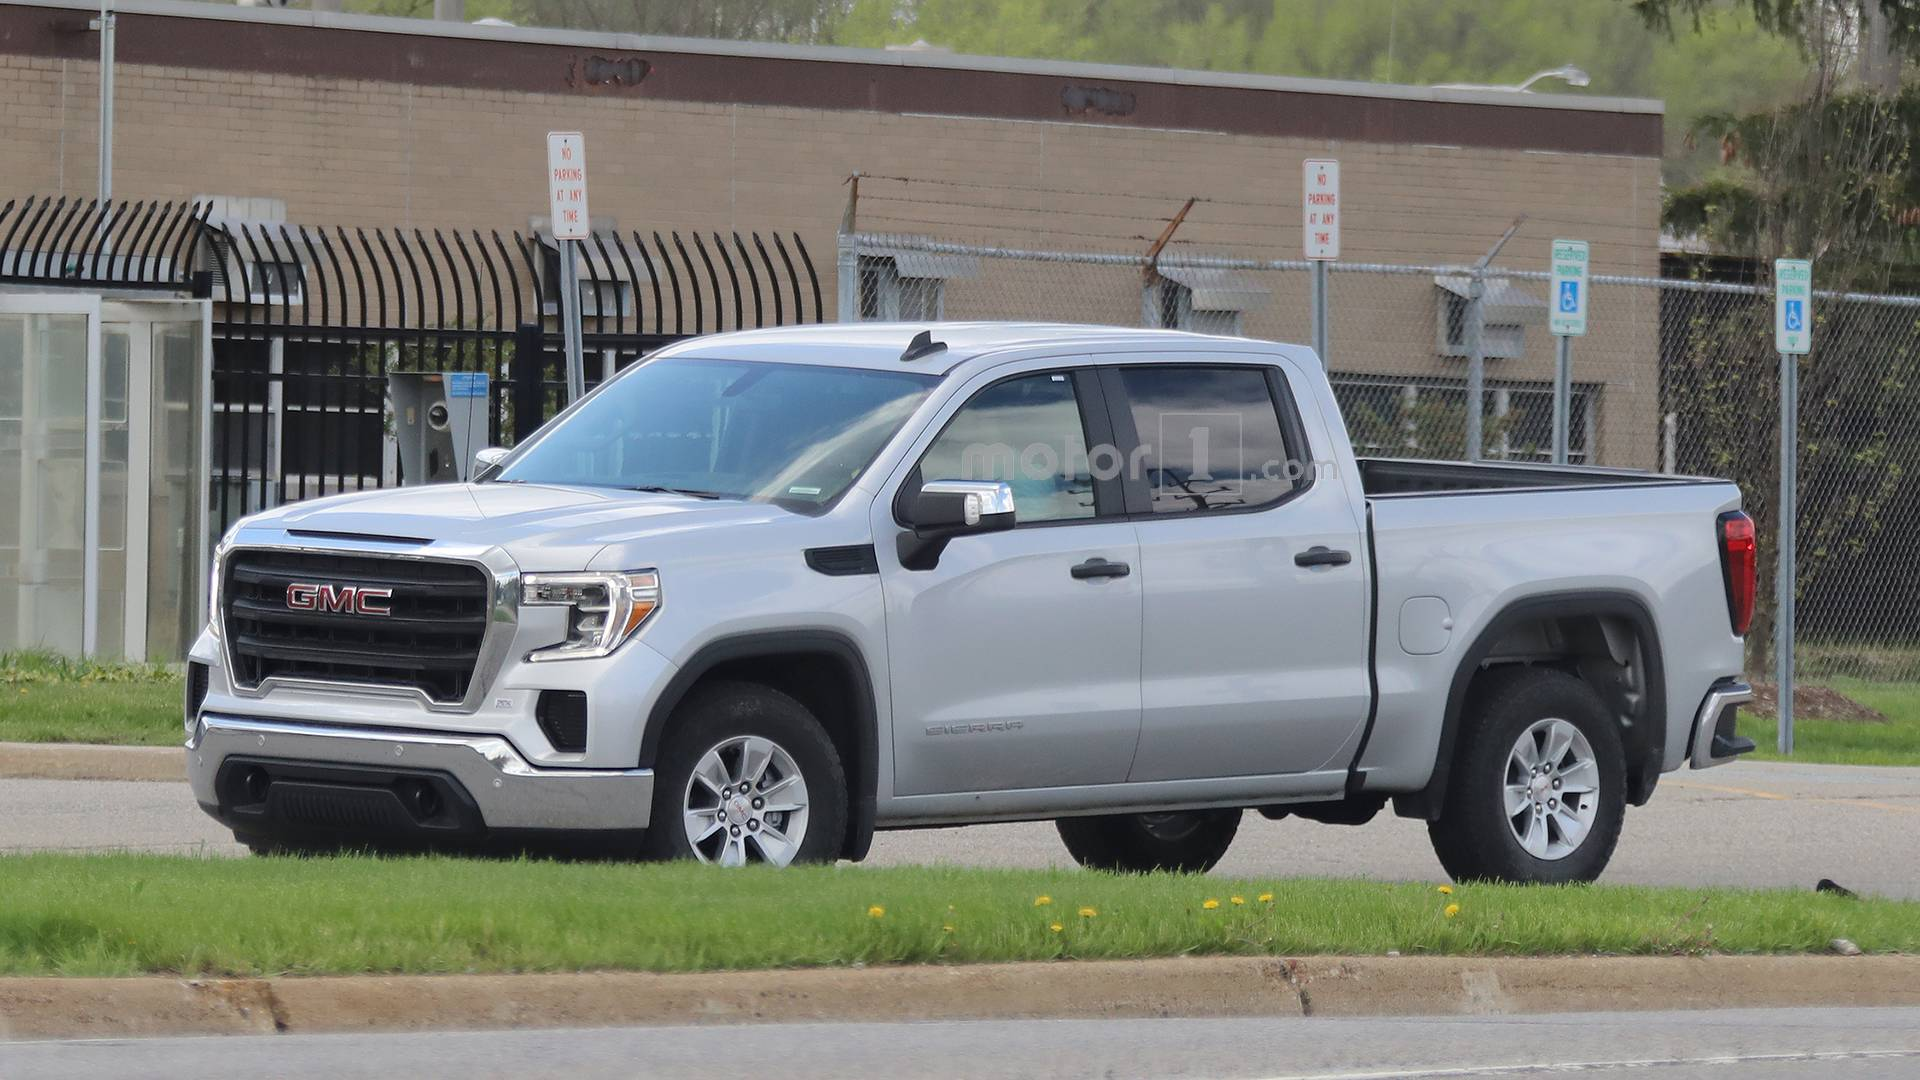 Entry Level 2019 Gmc Sierra 1500 Spied Looking Quite Restrained